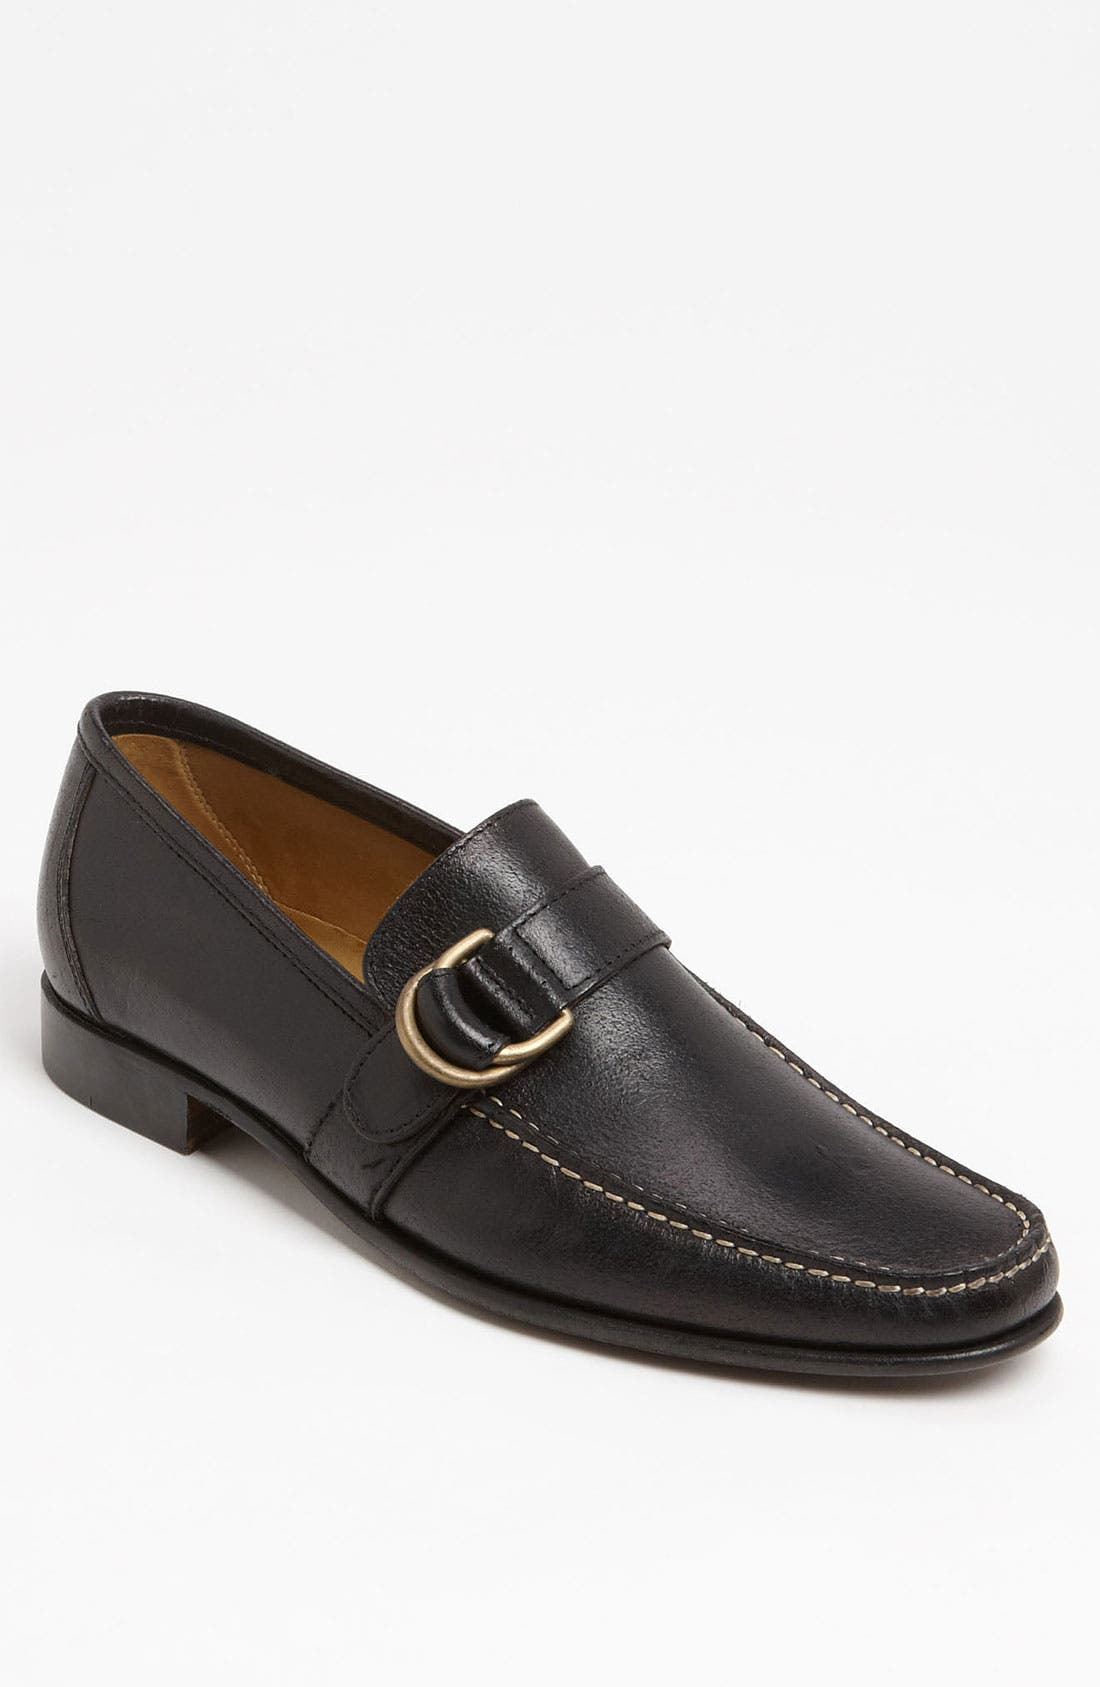 Alternate Image 1 Selected - Billy Reid Bit Loafer